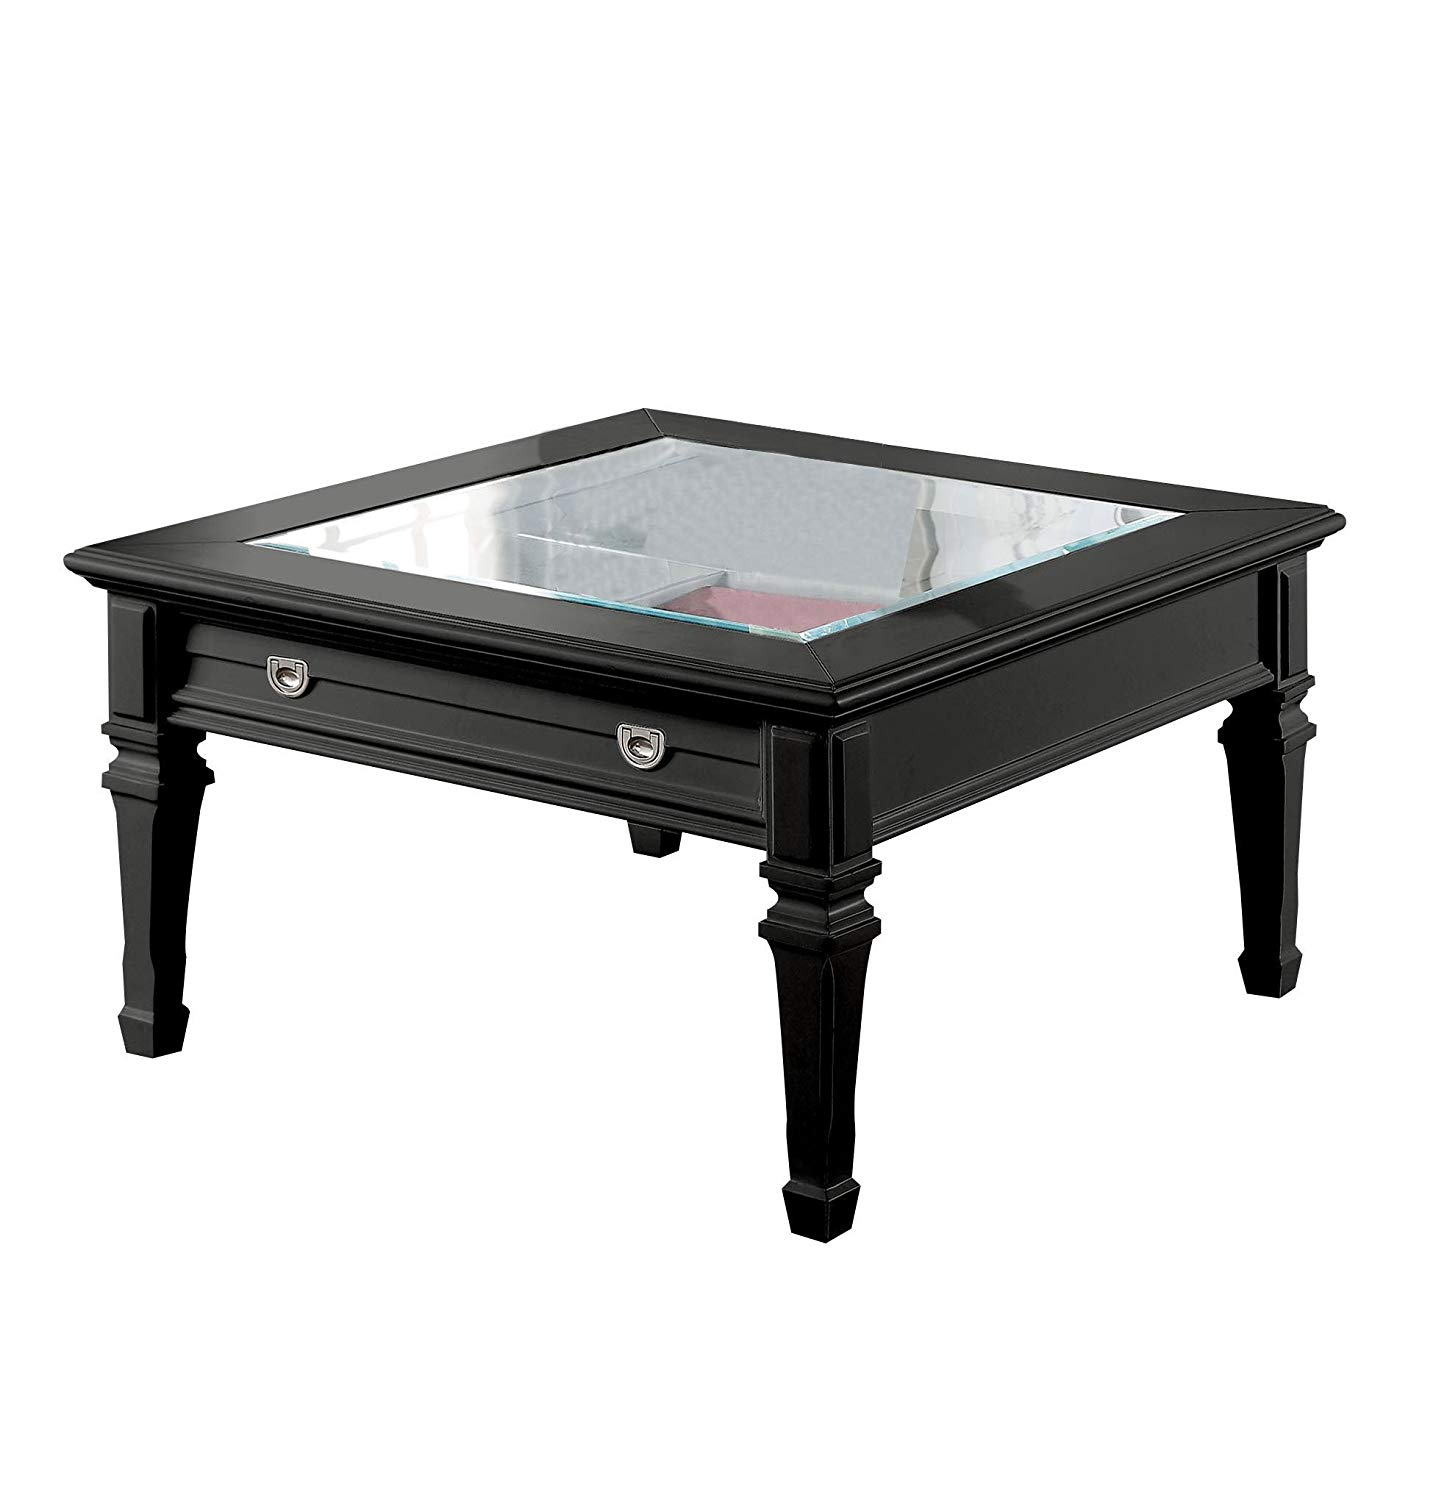 acme adalyn black coffee table with display glass top round metal glynn accent kitchen dining mirrored bedside chest colorful nightstands wooden threshold bar outdoor rattan